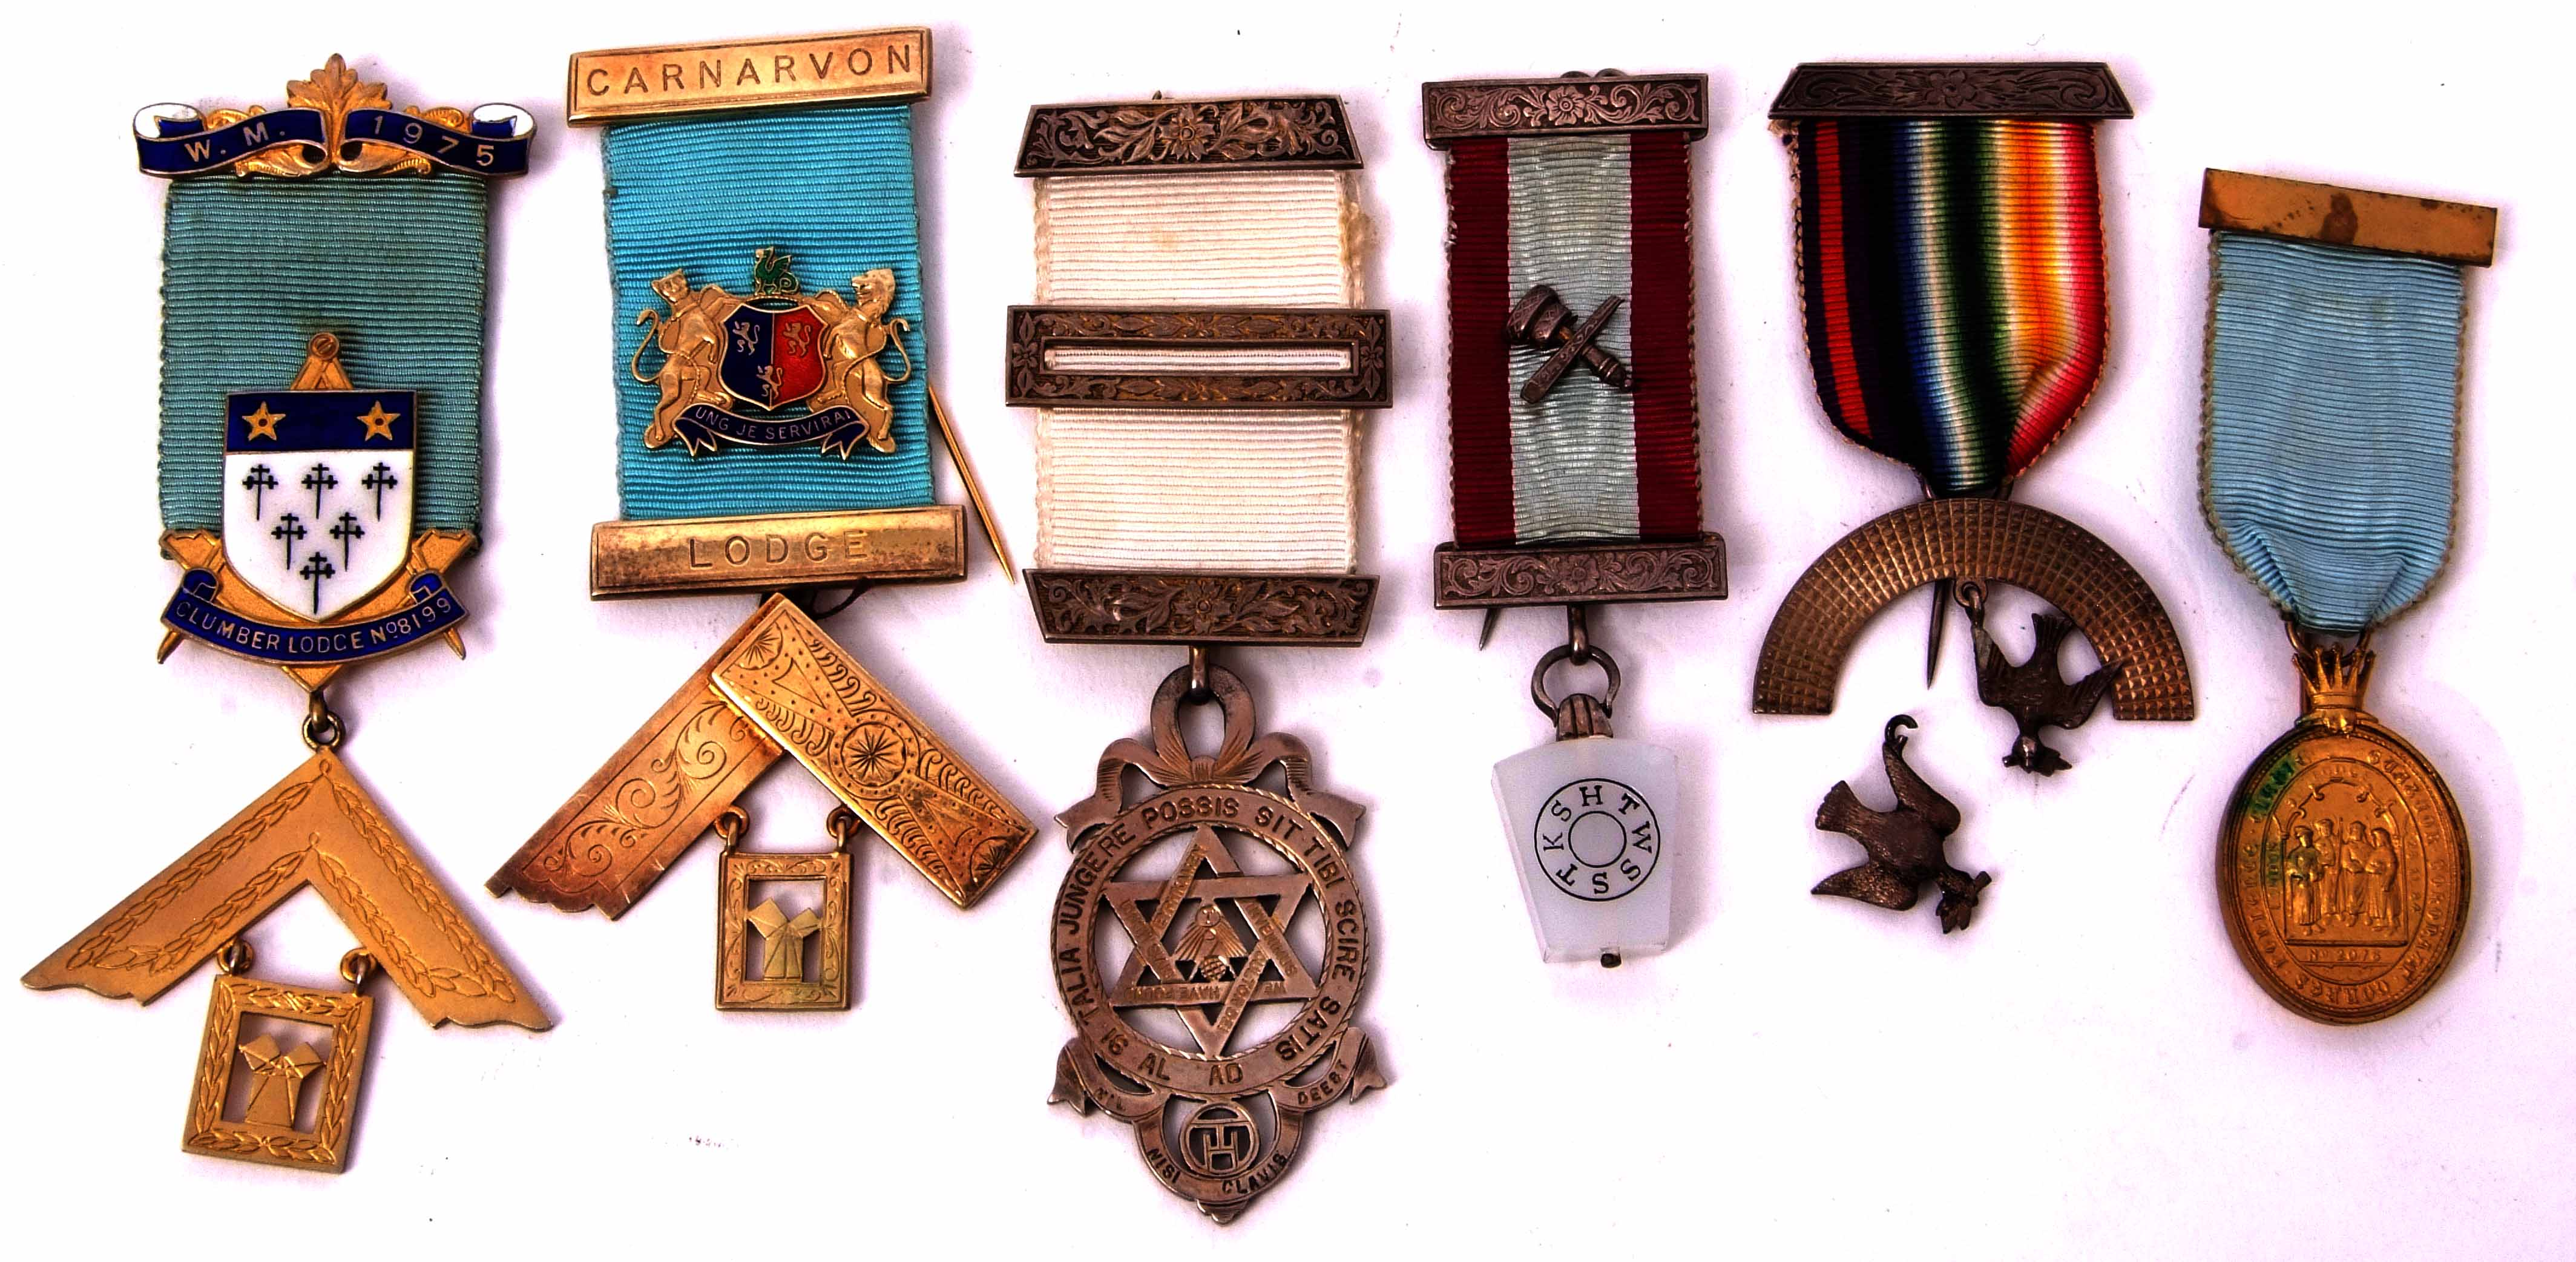 Lot 584 - Six various silver, silver gilt and base metal Masonic jewels including Caernarvon Lodge (6)